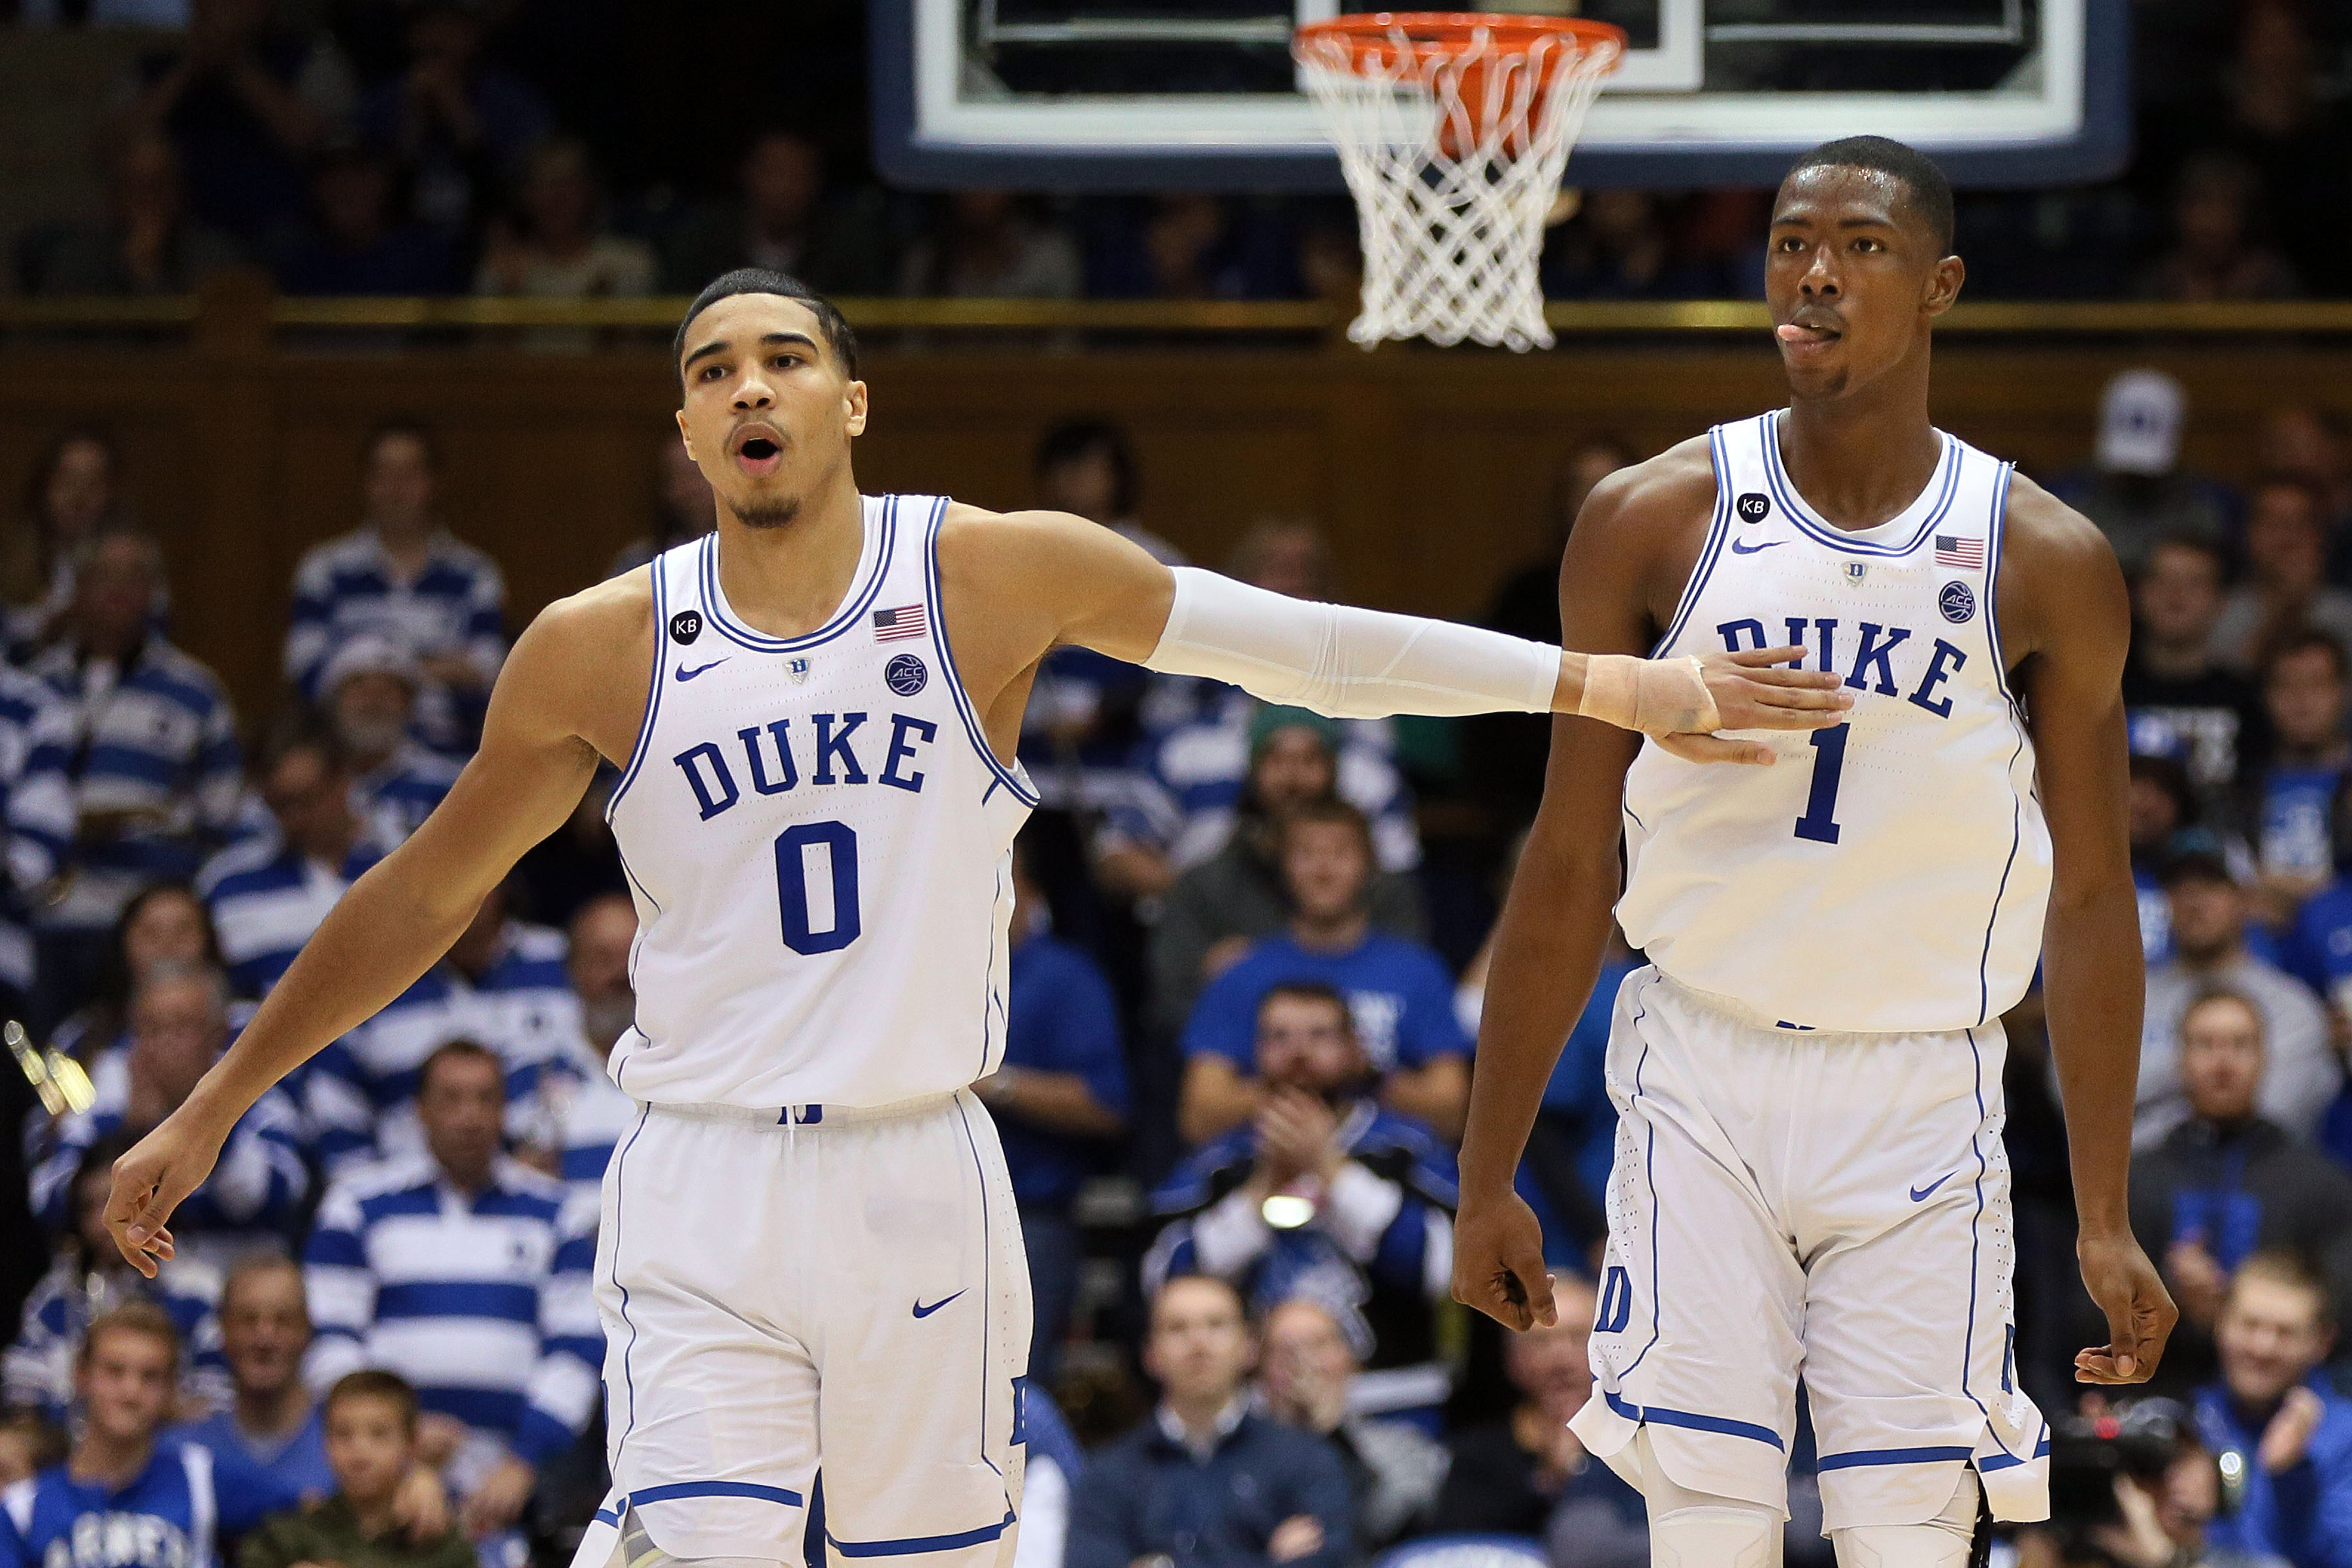 duke basketball - photo #14